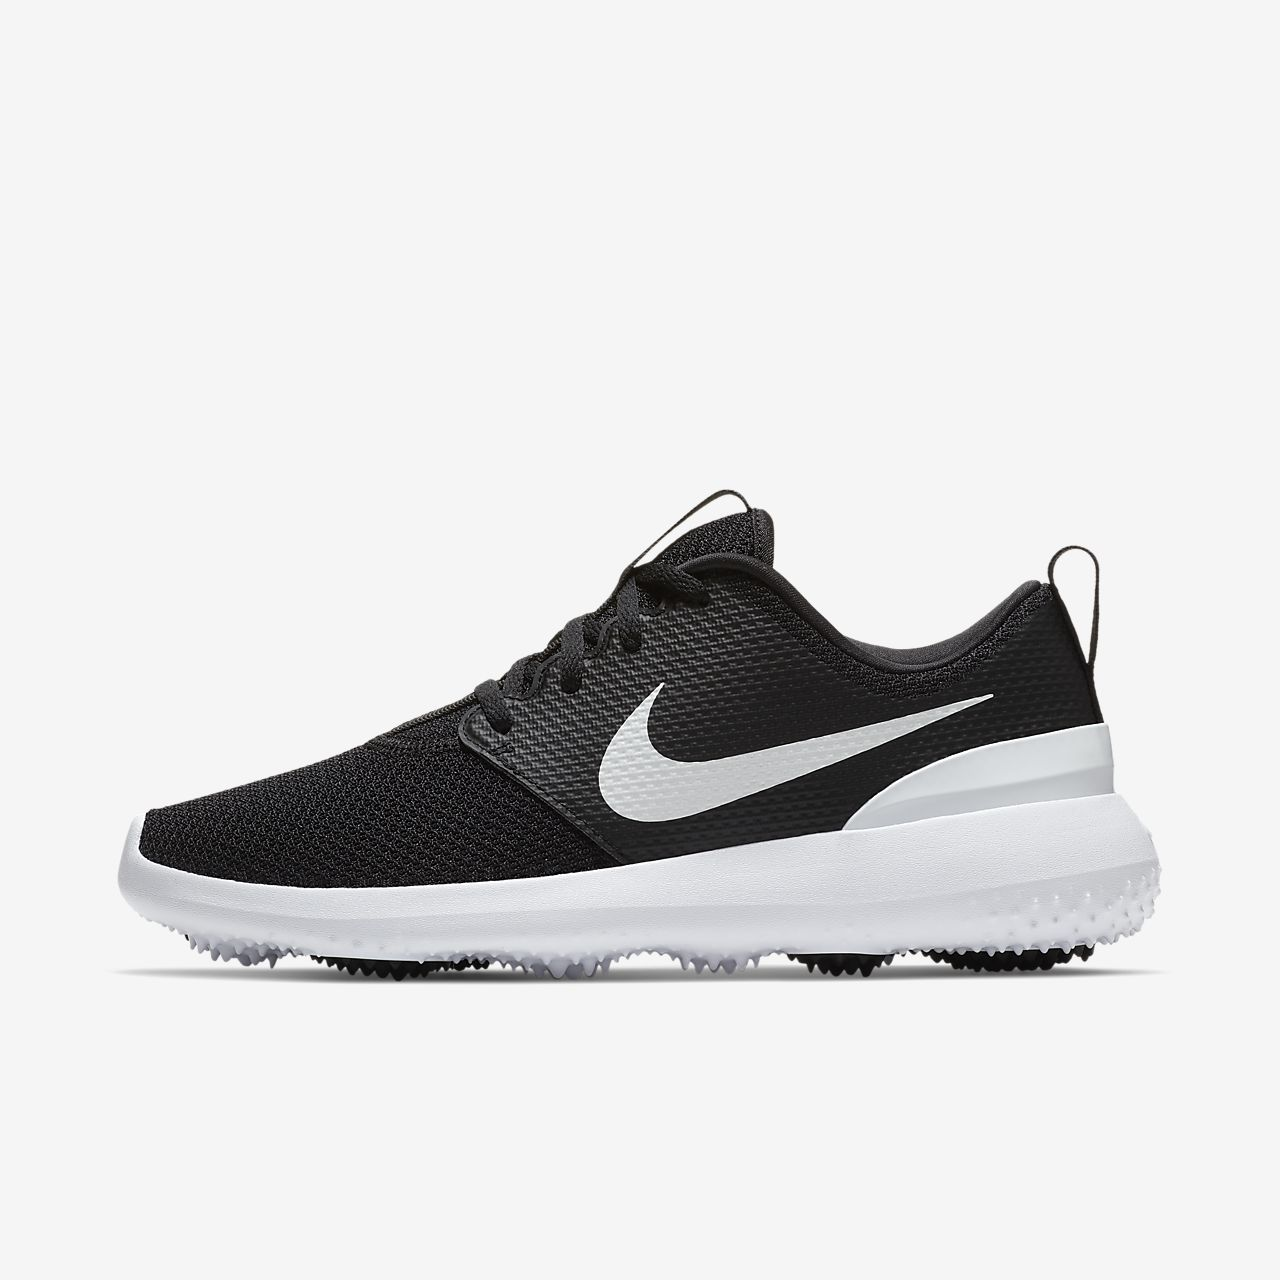 8717d7025e769 Nike Roshe G Women s Golf Shoe. Nike.com GB